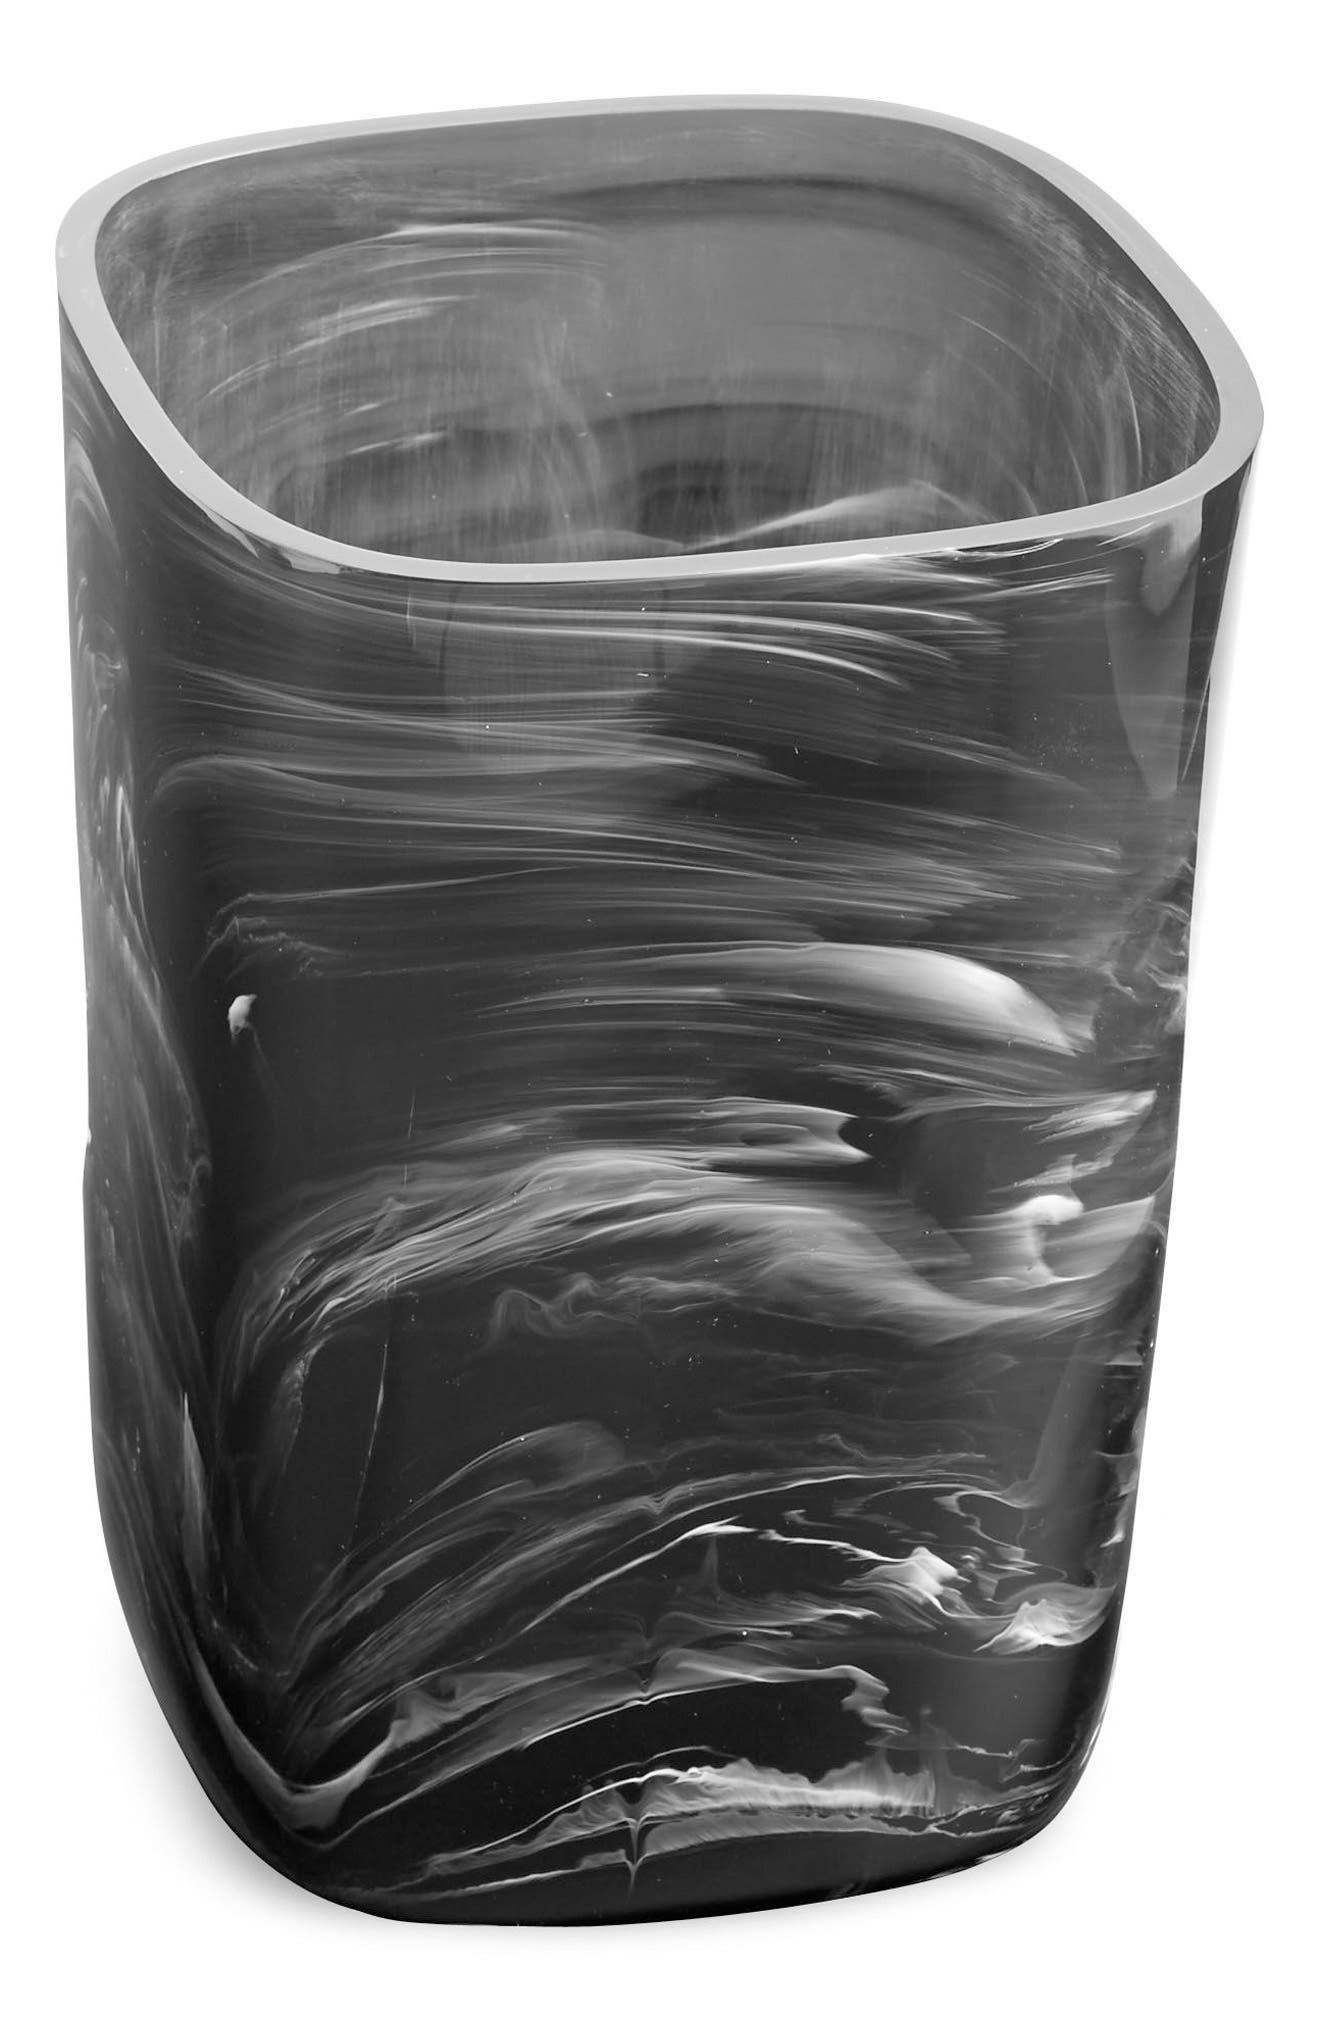 Murano Wastebasket,                             Main thumbnail 1, color,                             001